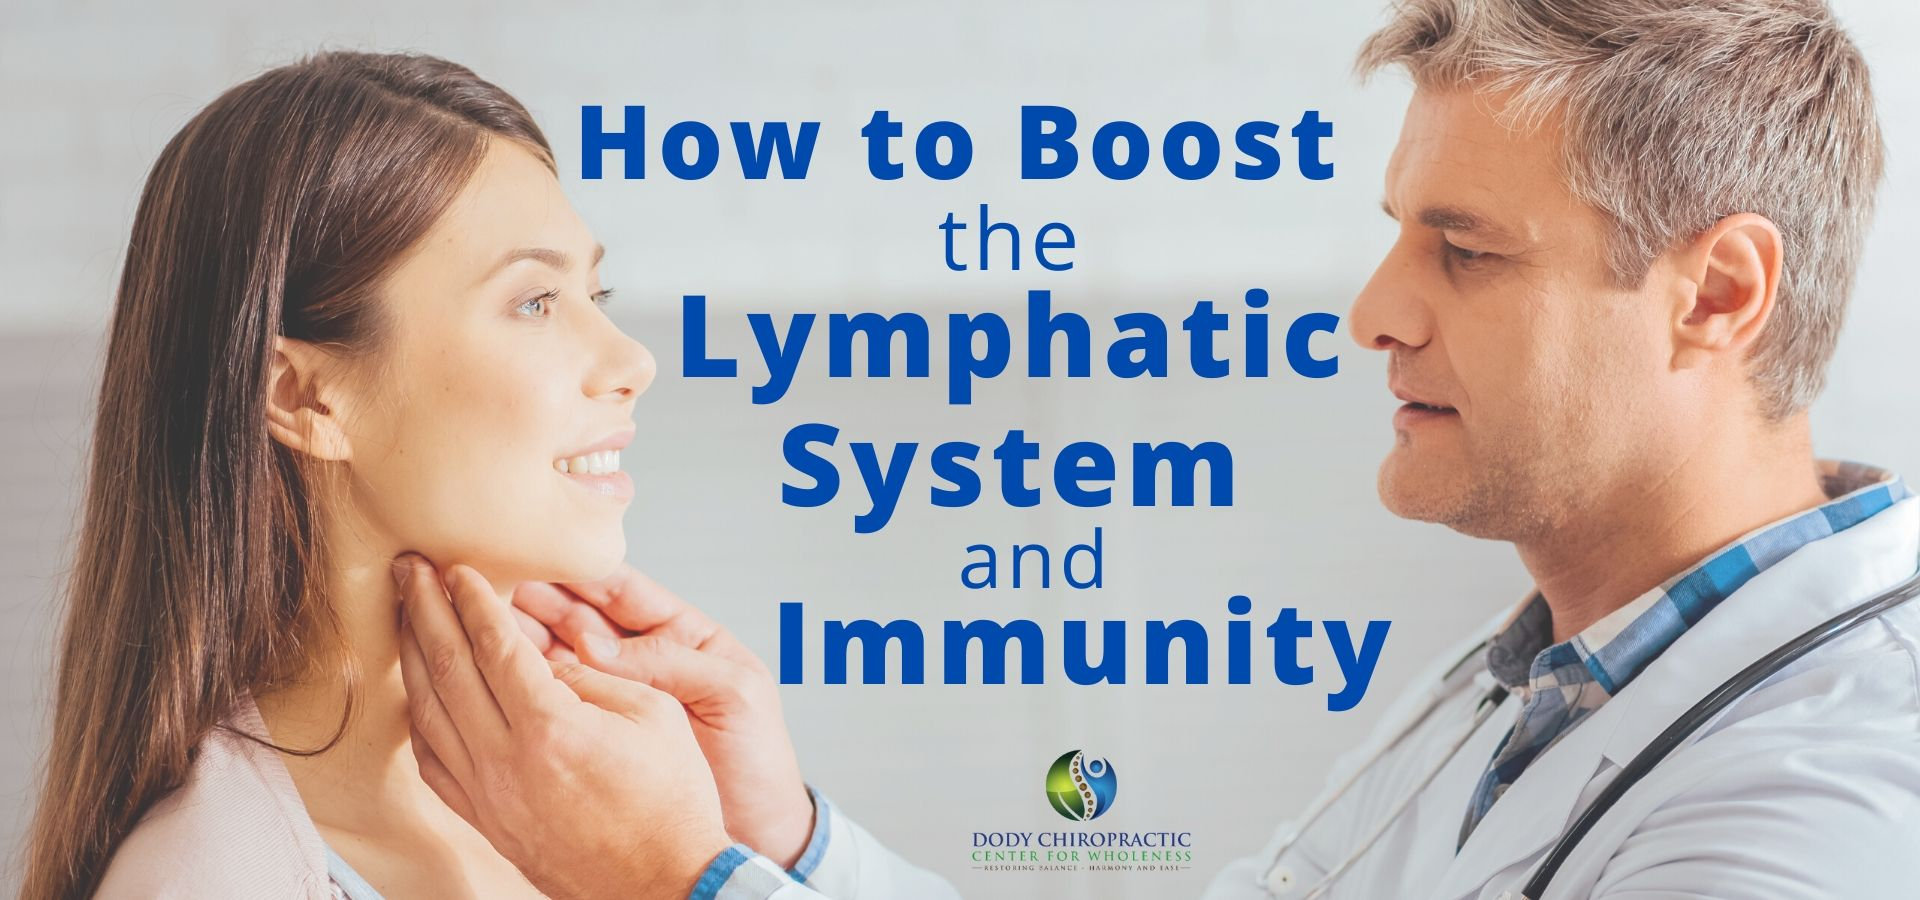 How to Boost the Lymphatic System and Immunity(1)